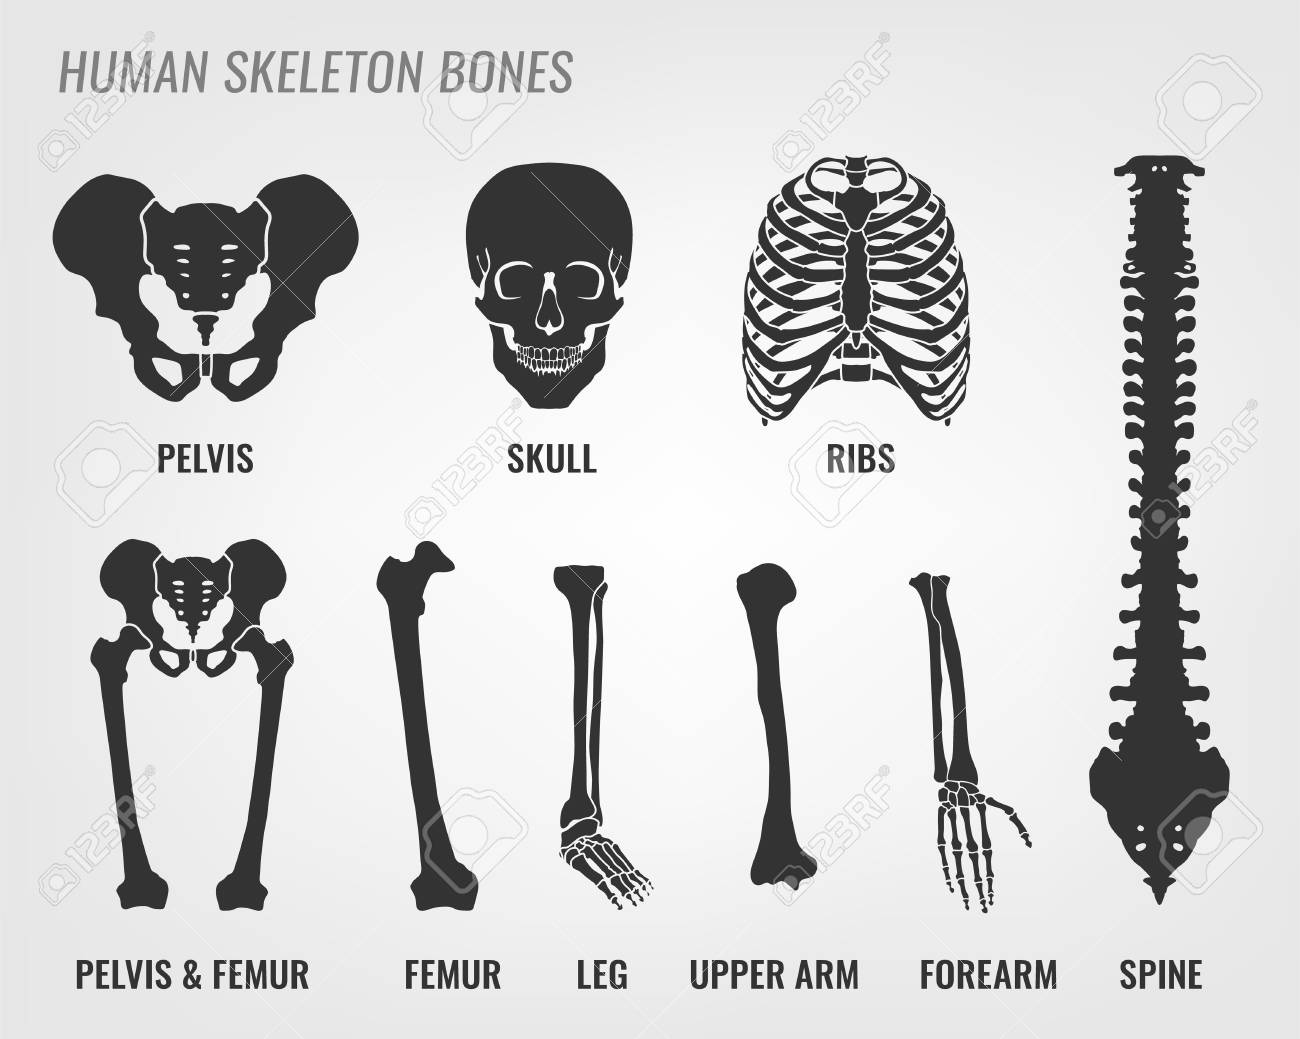 Human Skeleton Bones Vector Illustration In Flat Style With